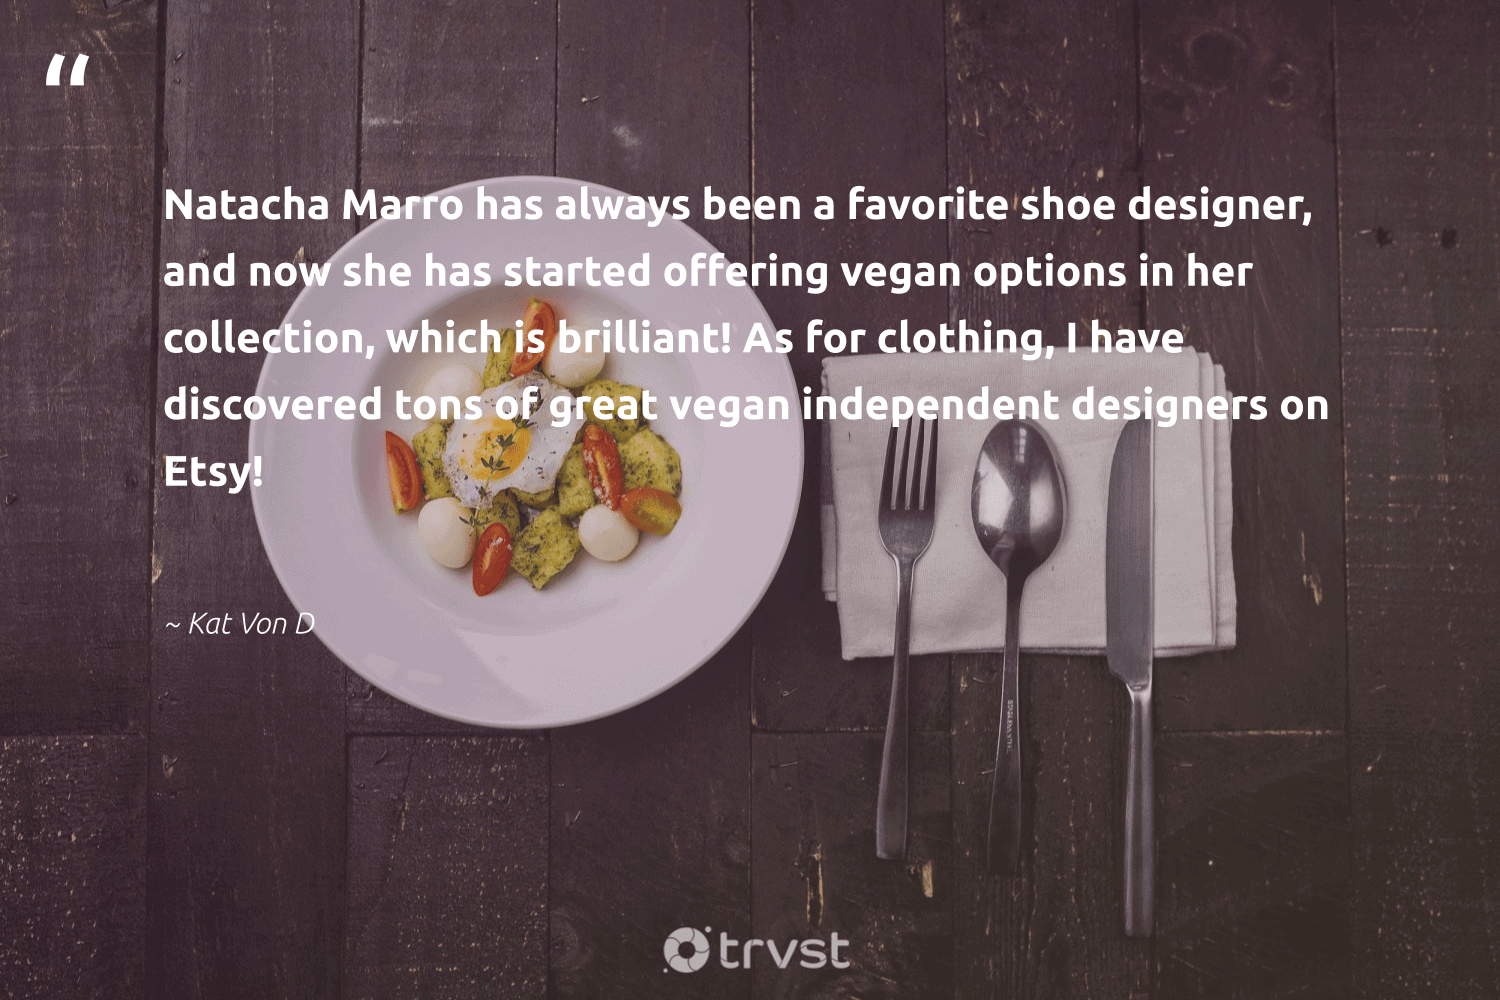 """""""Natacha Marro has always been a favorite shoe designer, and now she has started offering vegan options in her collection, which is brilliant! As for clothing, I have discovered tons of great vegan independent designers on Etsy!""""  - Kat Von D #trvst #quotes #vegan #veganfoodshare #sustainable #green #thinkgreen #veganlife #bethechange #sustainability #gogreen #veganfood"""